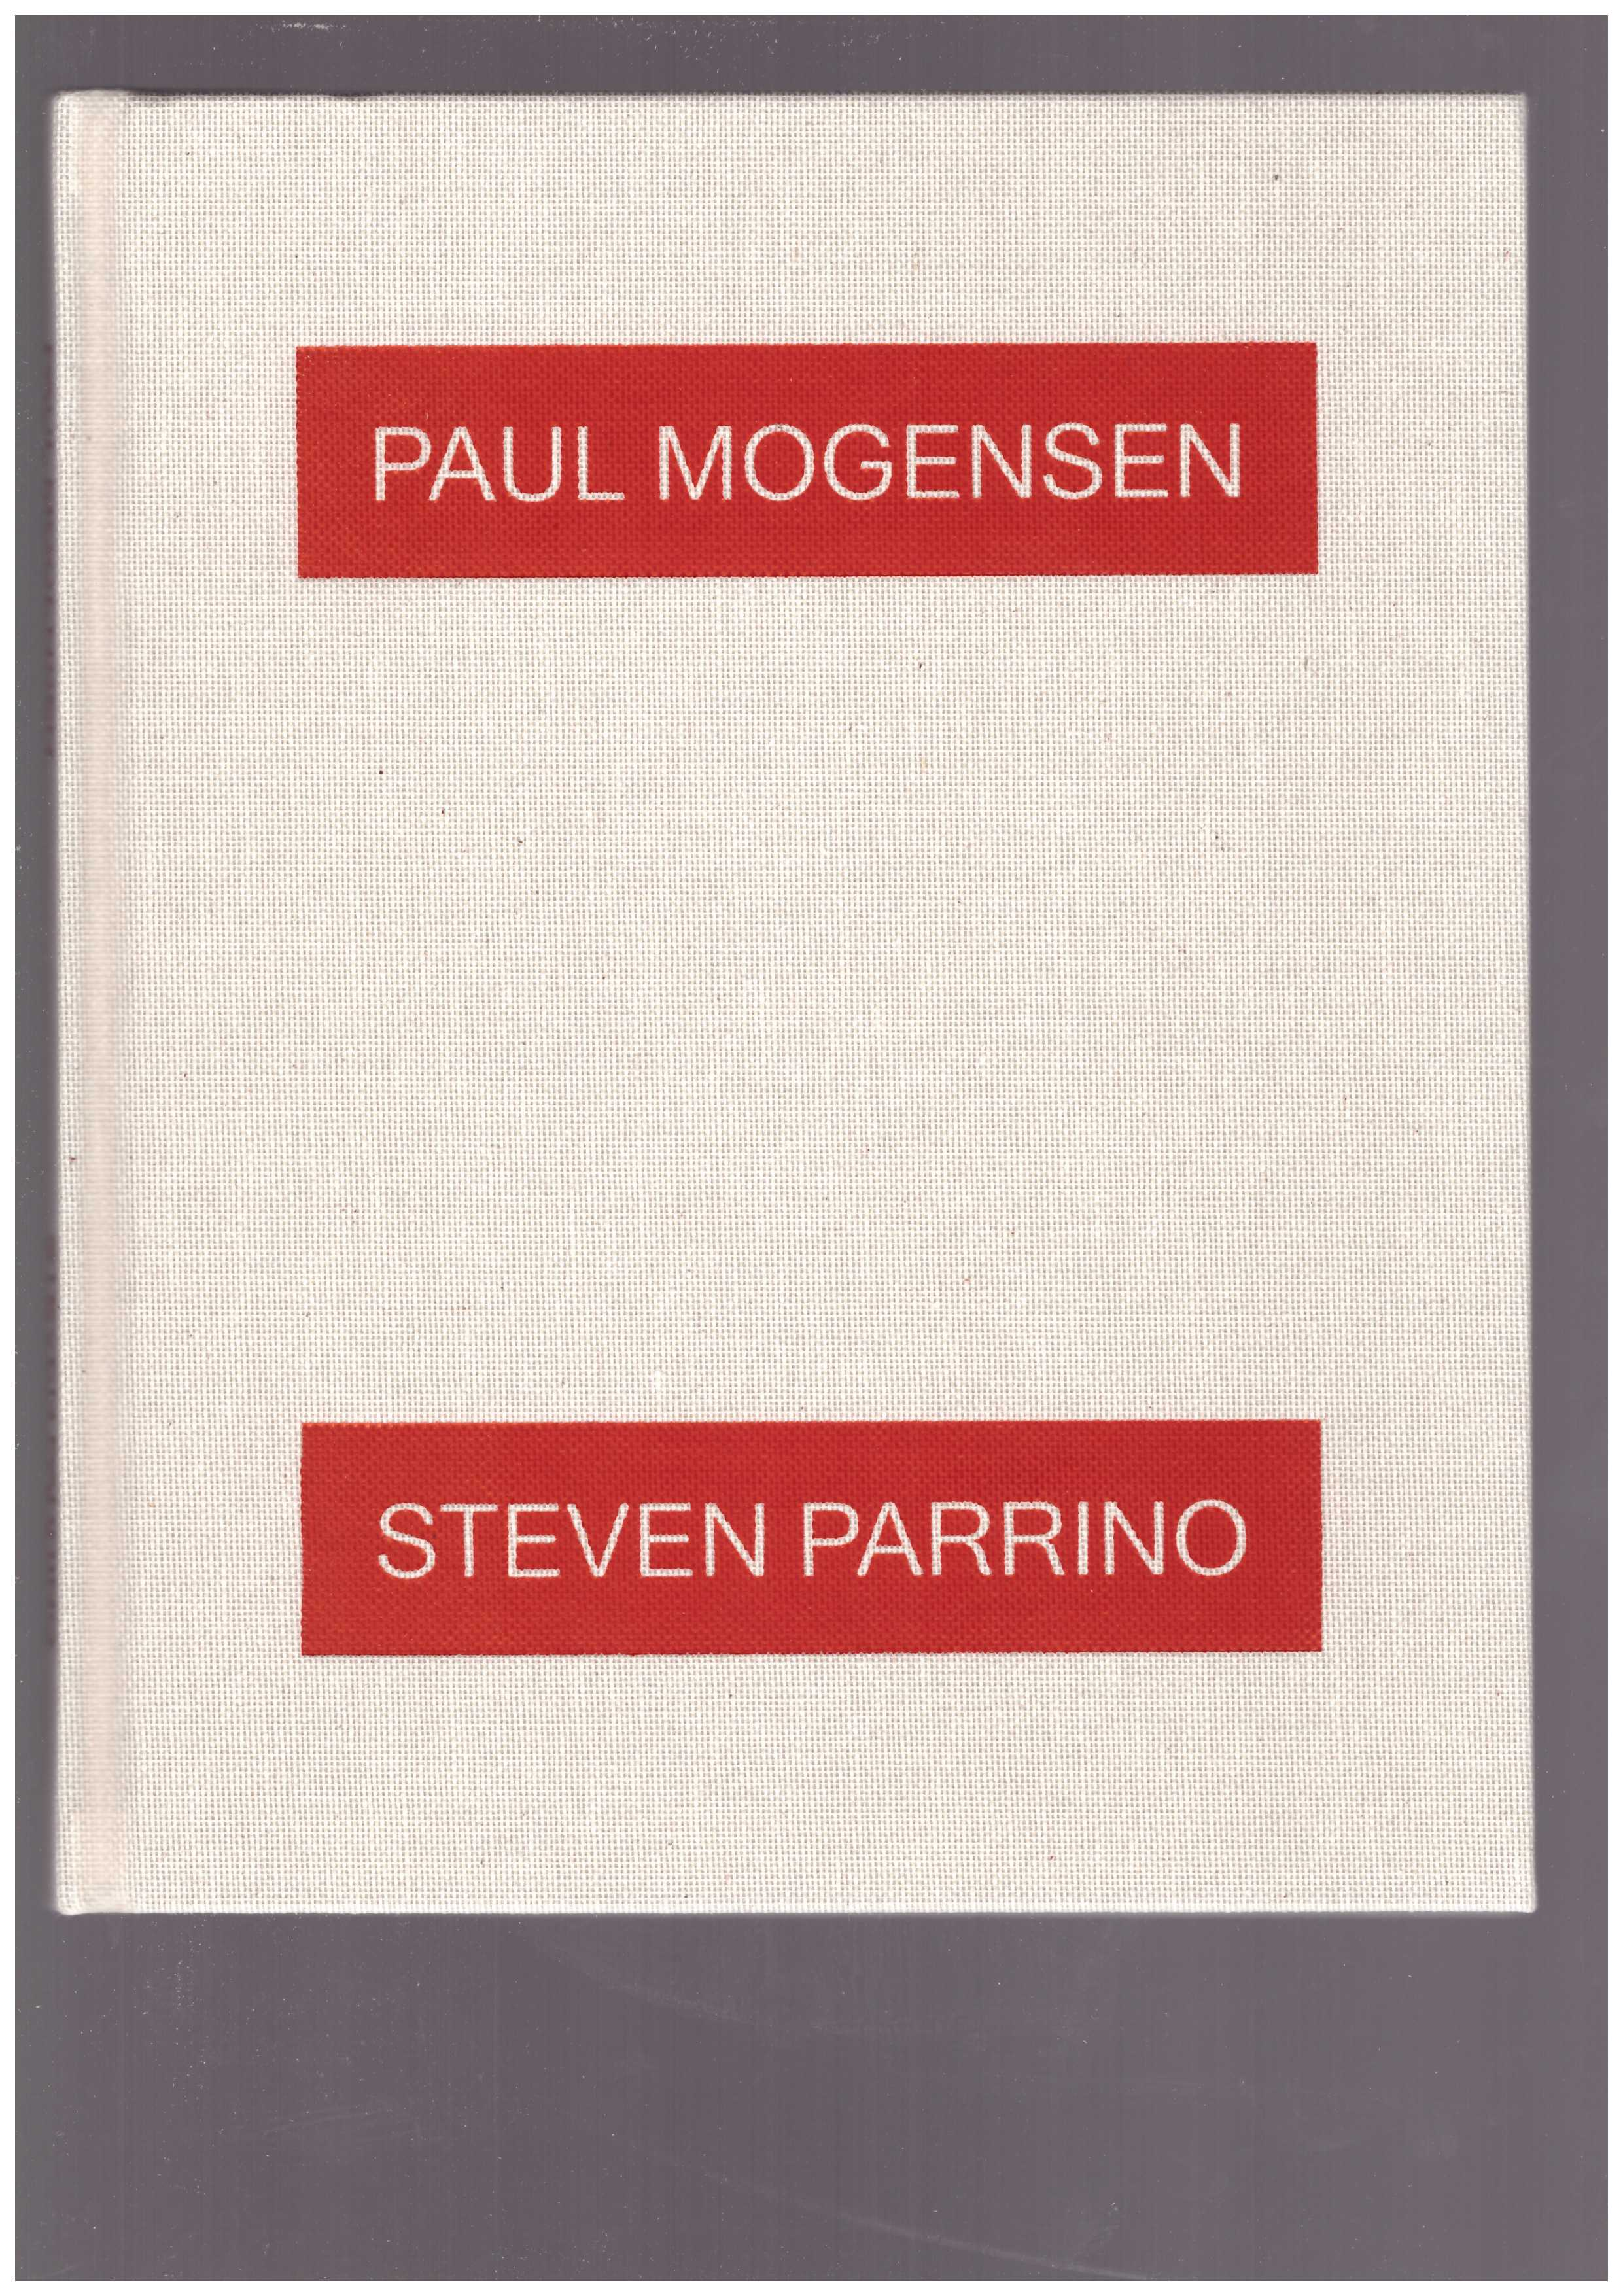 NICKAS, Bob  - Paul Mogensen – Steven Parrino